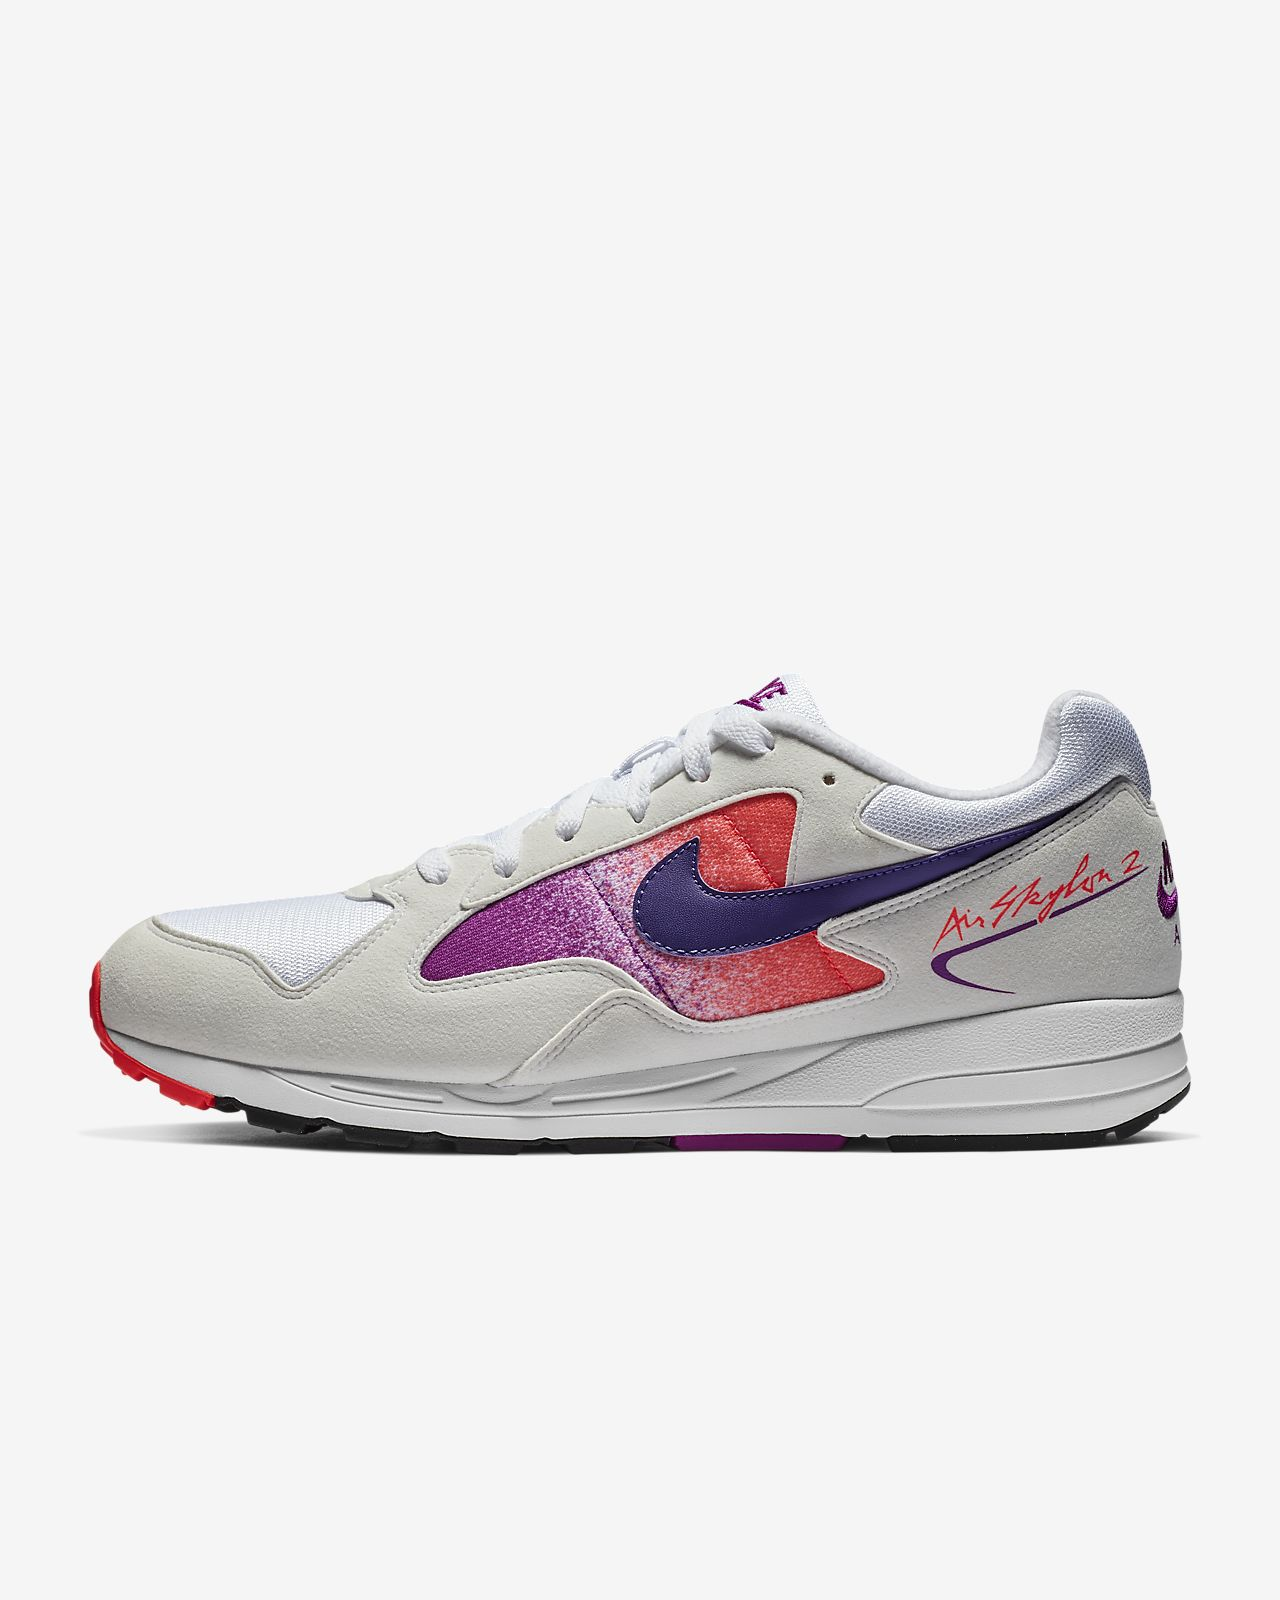 best cheap baf03 07512 ... Sko Nike Air Skylon II för män